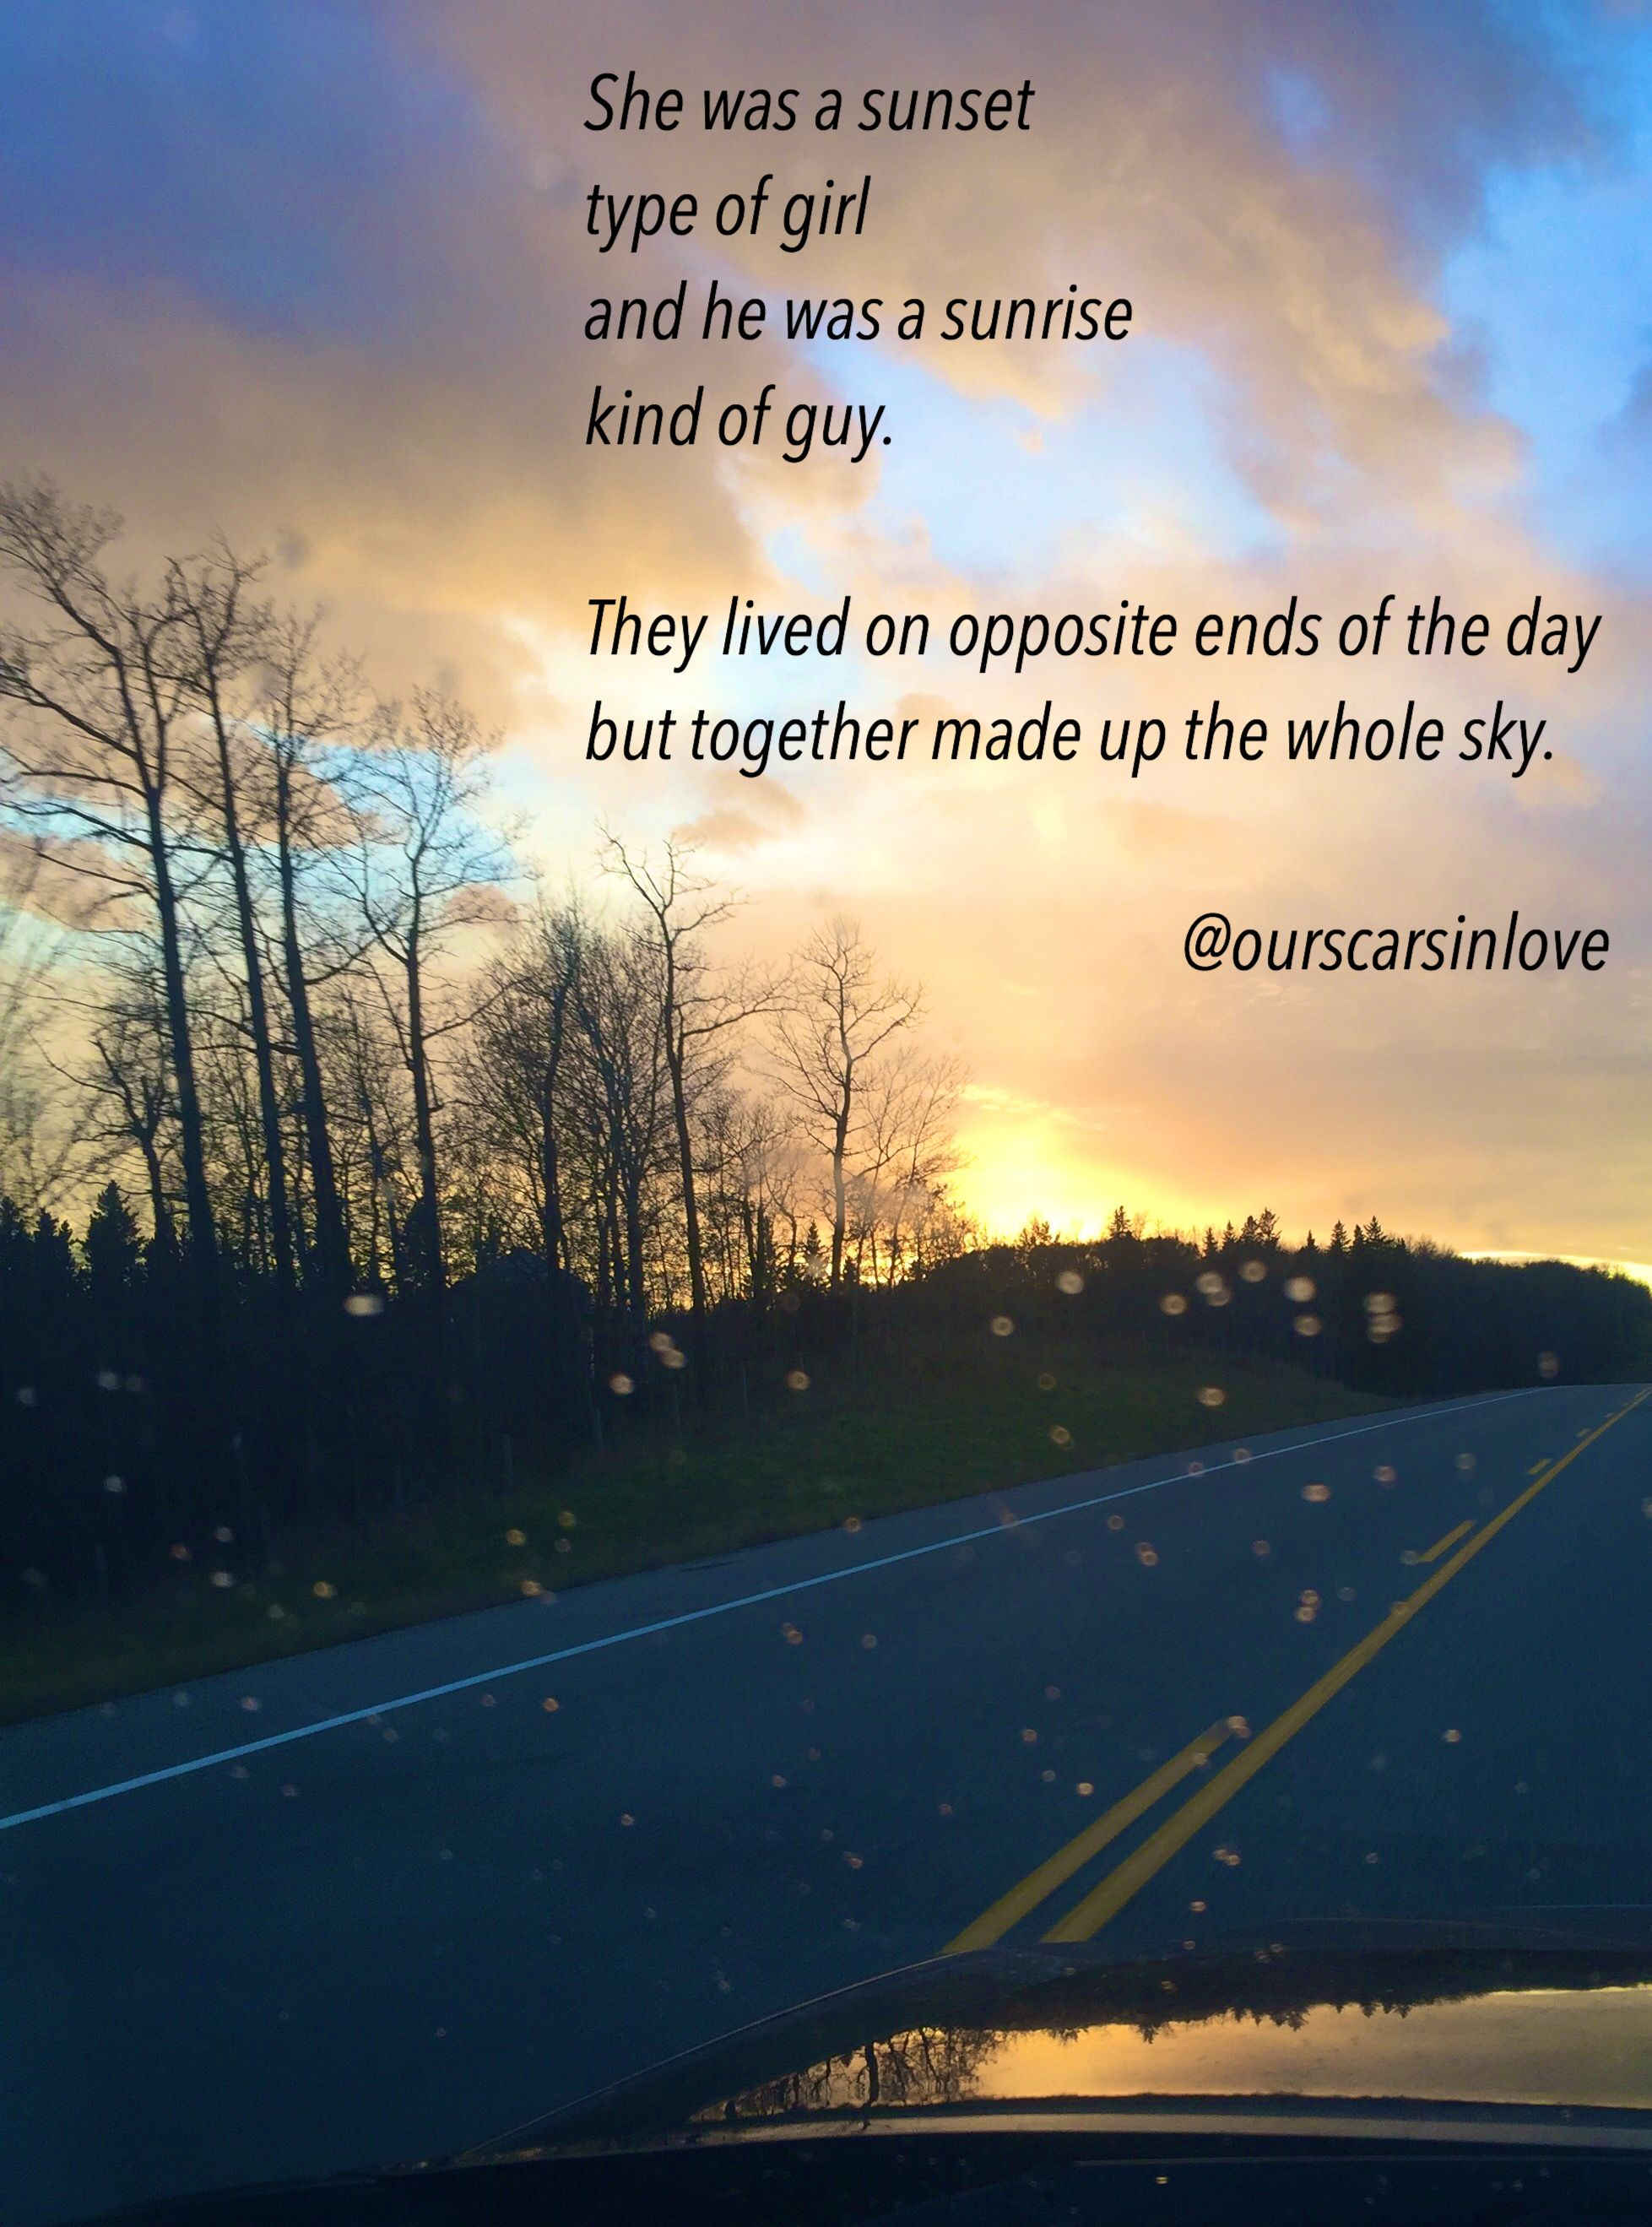 Ourscarsinlove poetry originalpoems poetsofig sunrise sunset quotes poems love friendship lovequotes sun